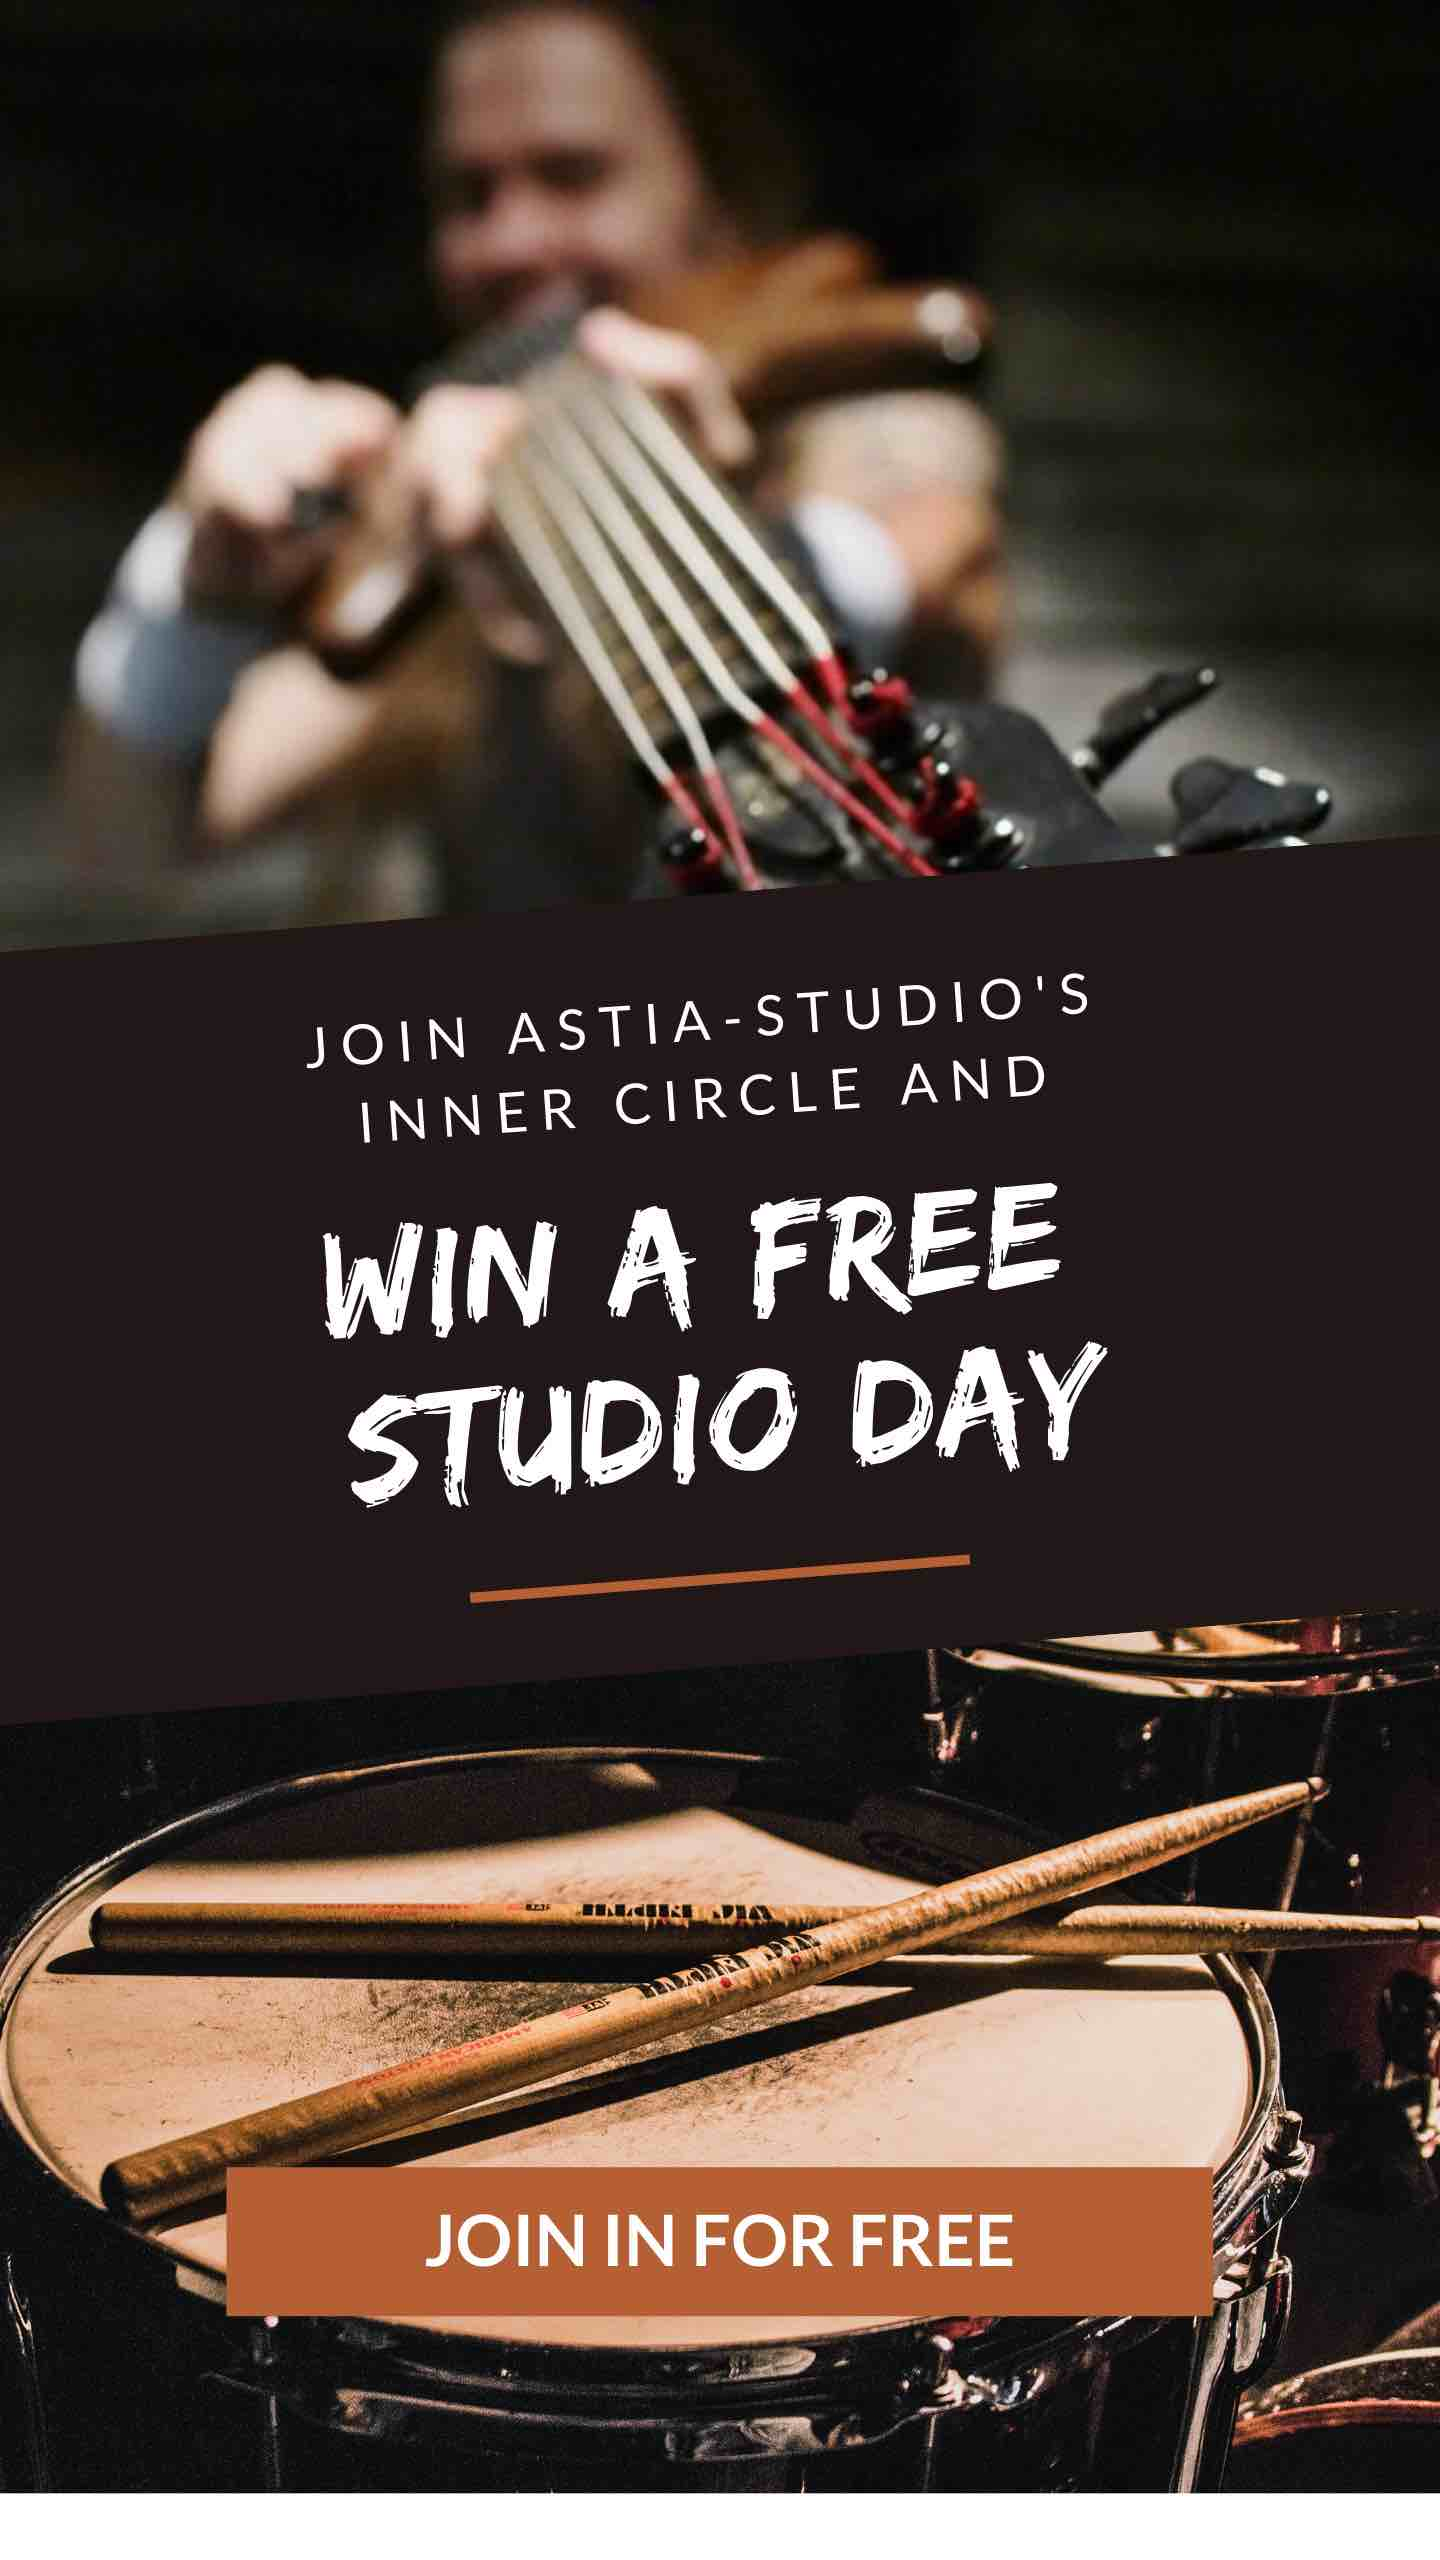 Win free studio day banner